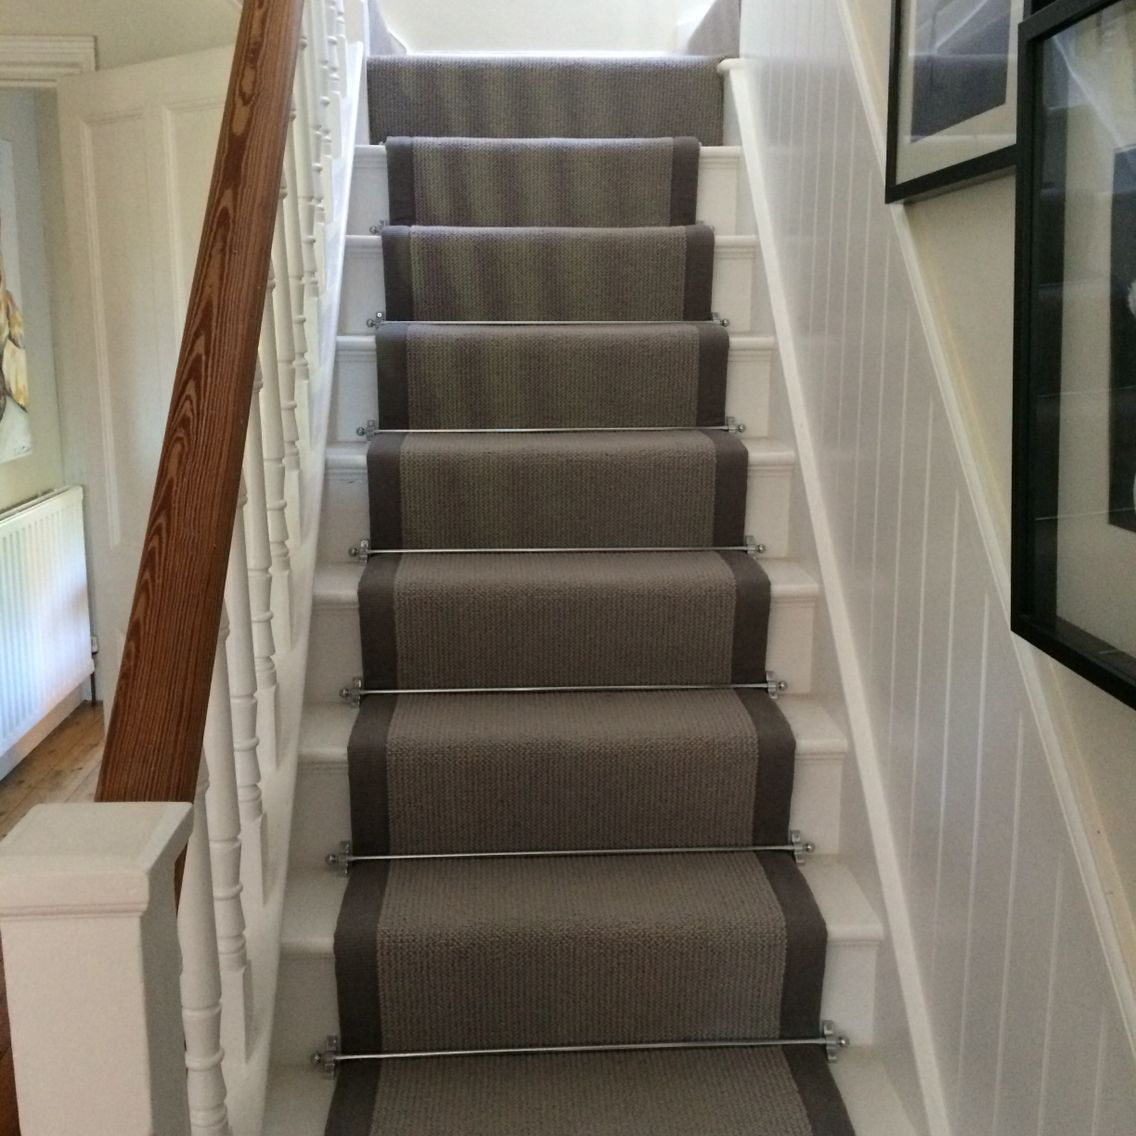 Pennells carpets ~ grey stair runner with chrome bars | Home Decor ...